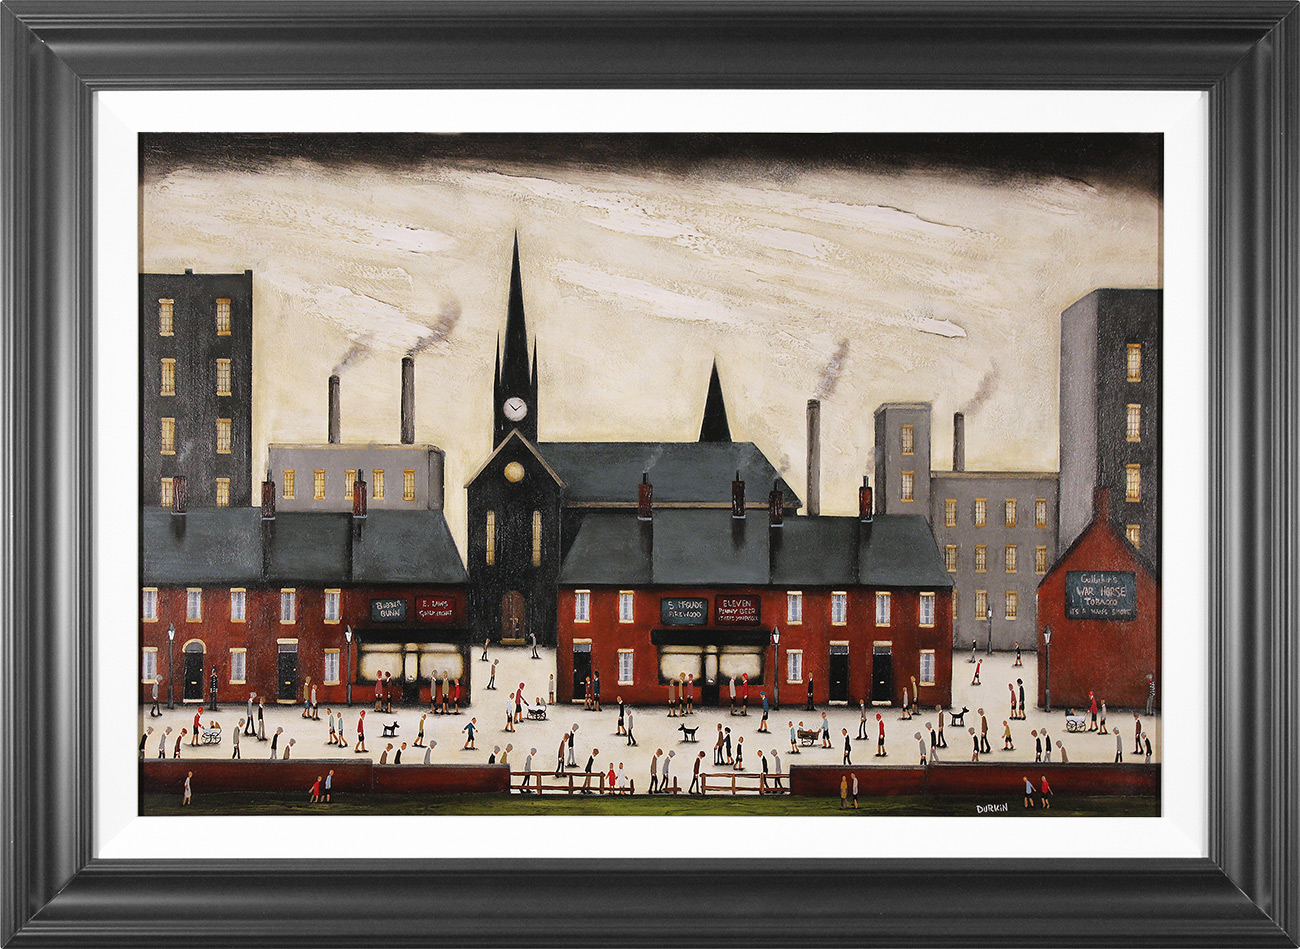 Sean Durkin, Original oil painting on panel, Tales of the Town, click to enlarge